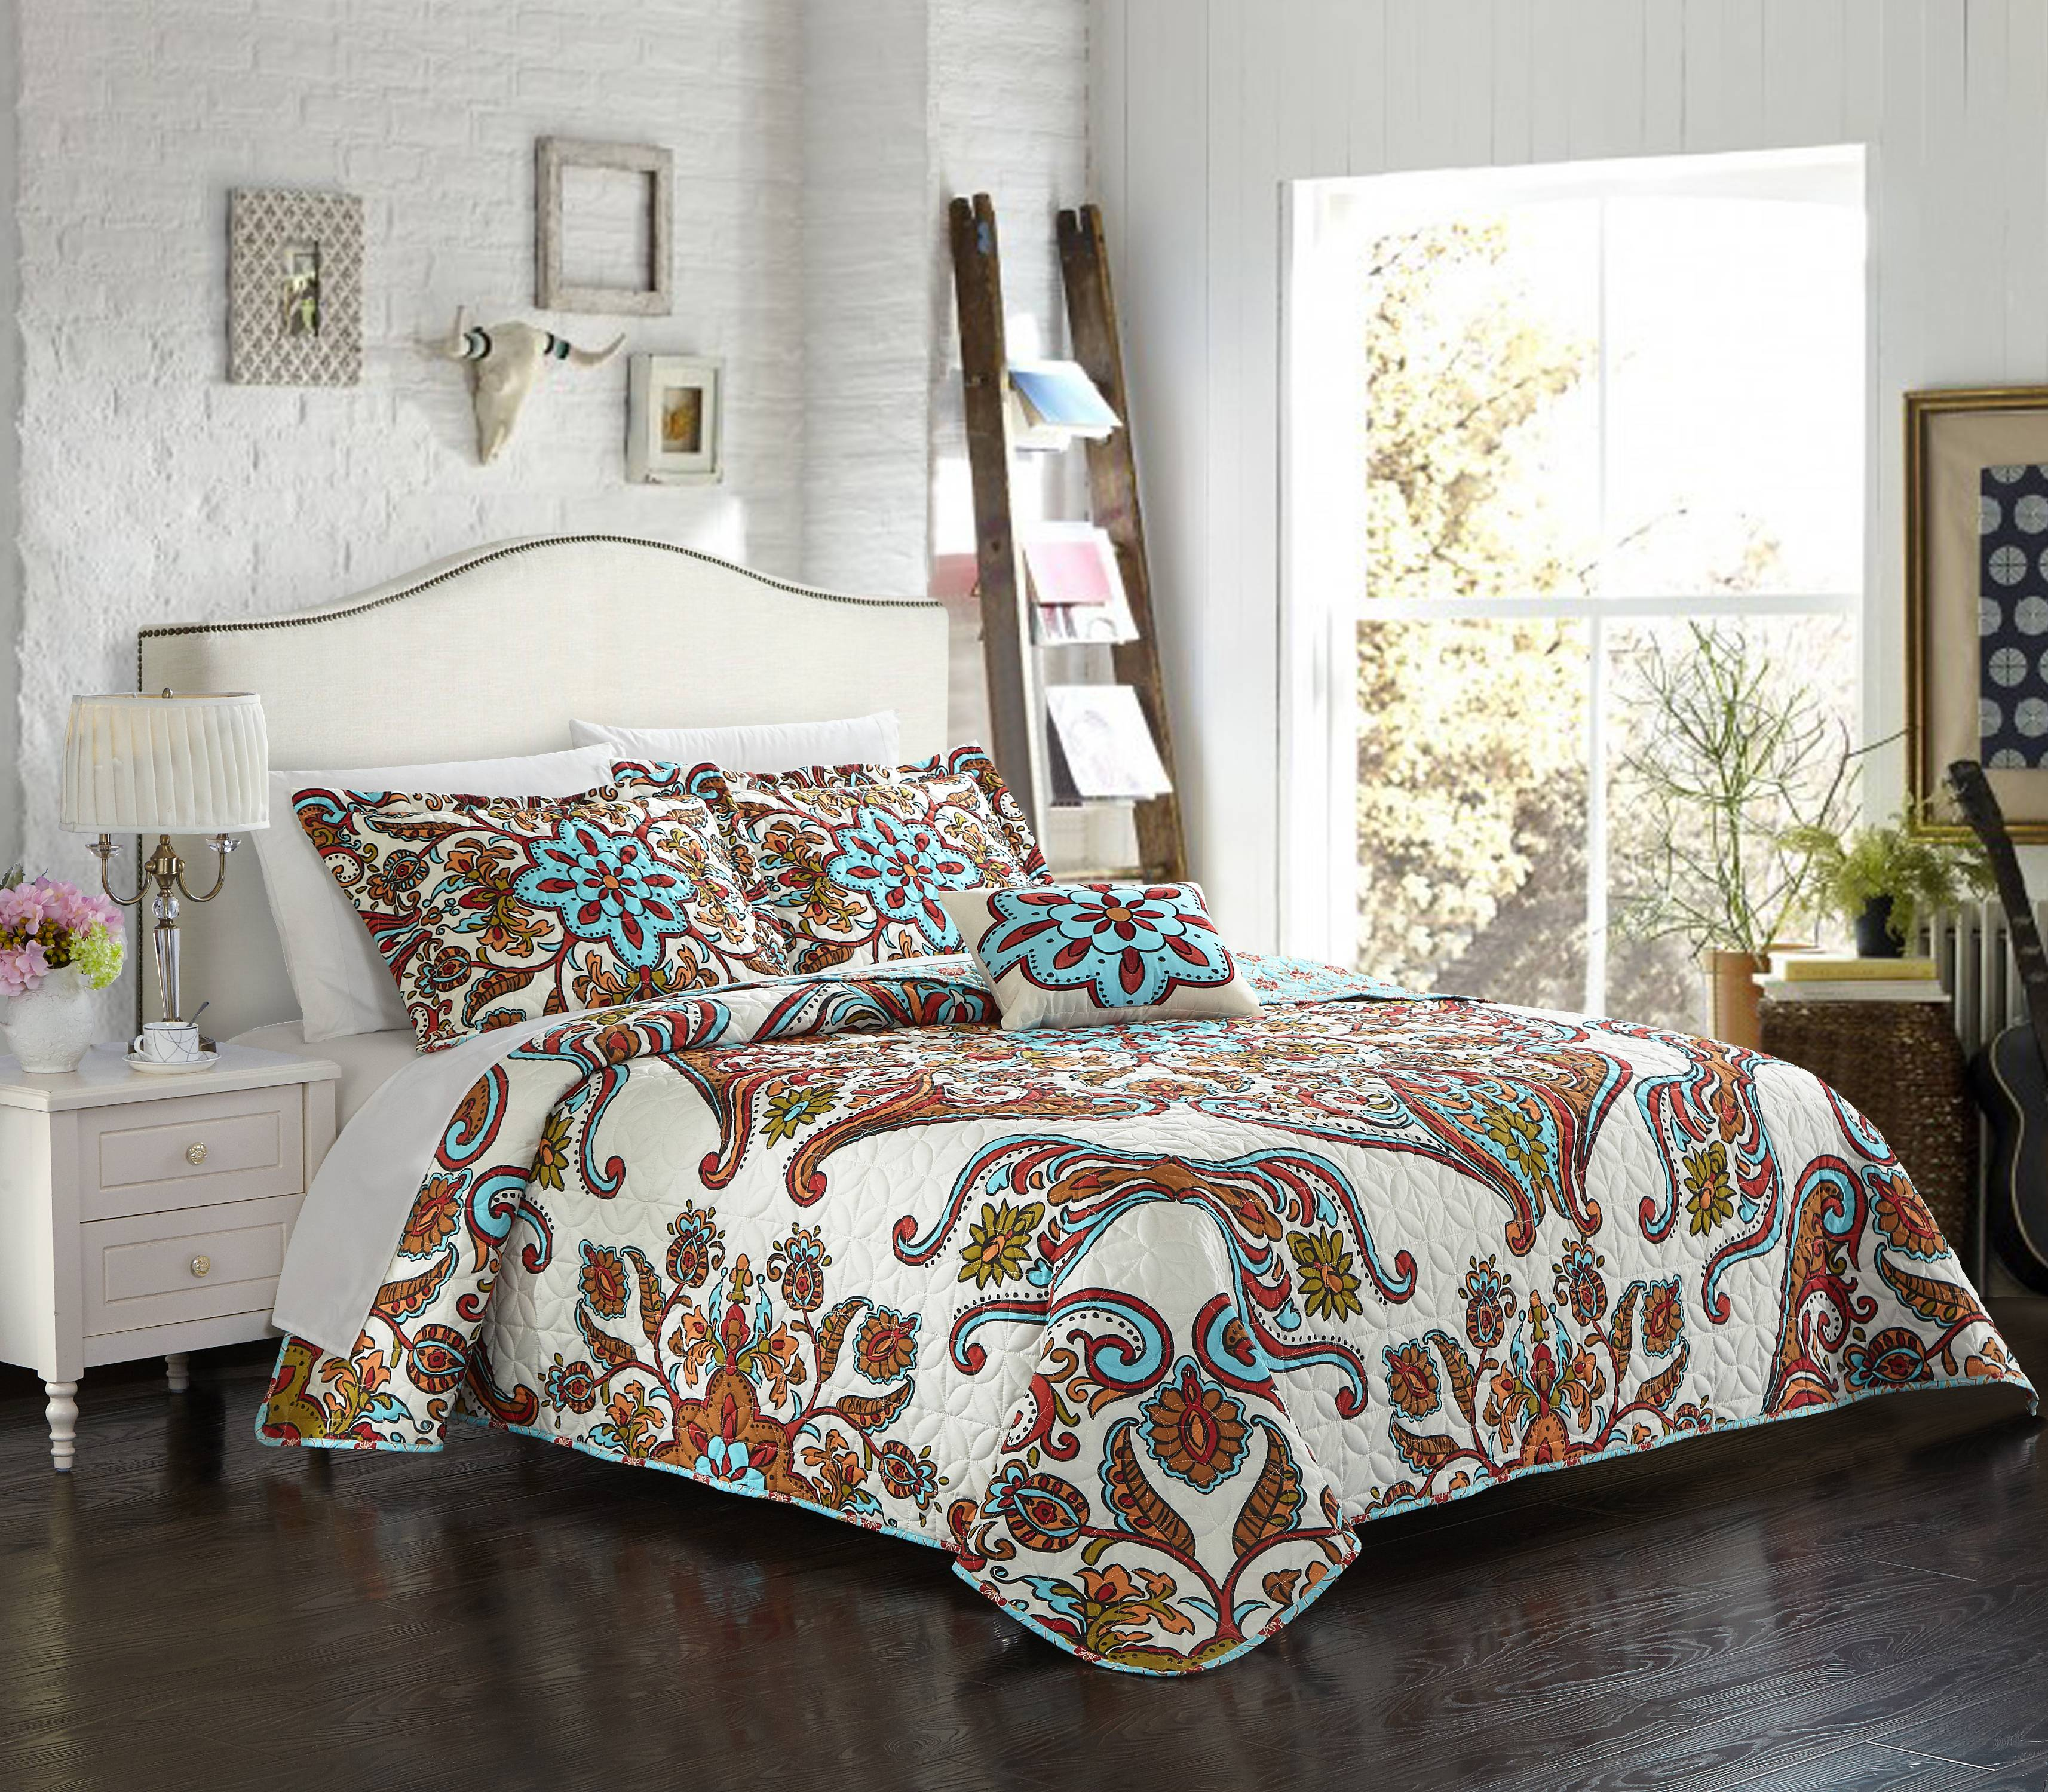 Chic Home Bretagne 4 Piece Reversible Quilt Cover Set by Chic Home